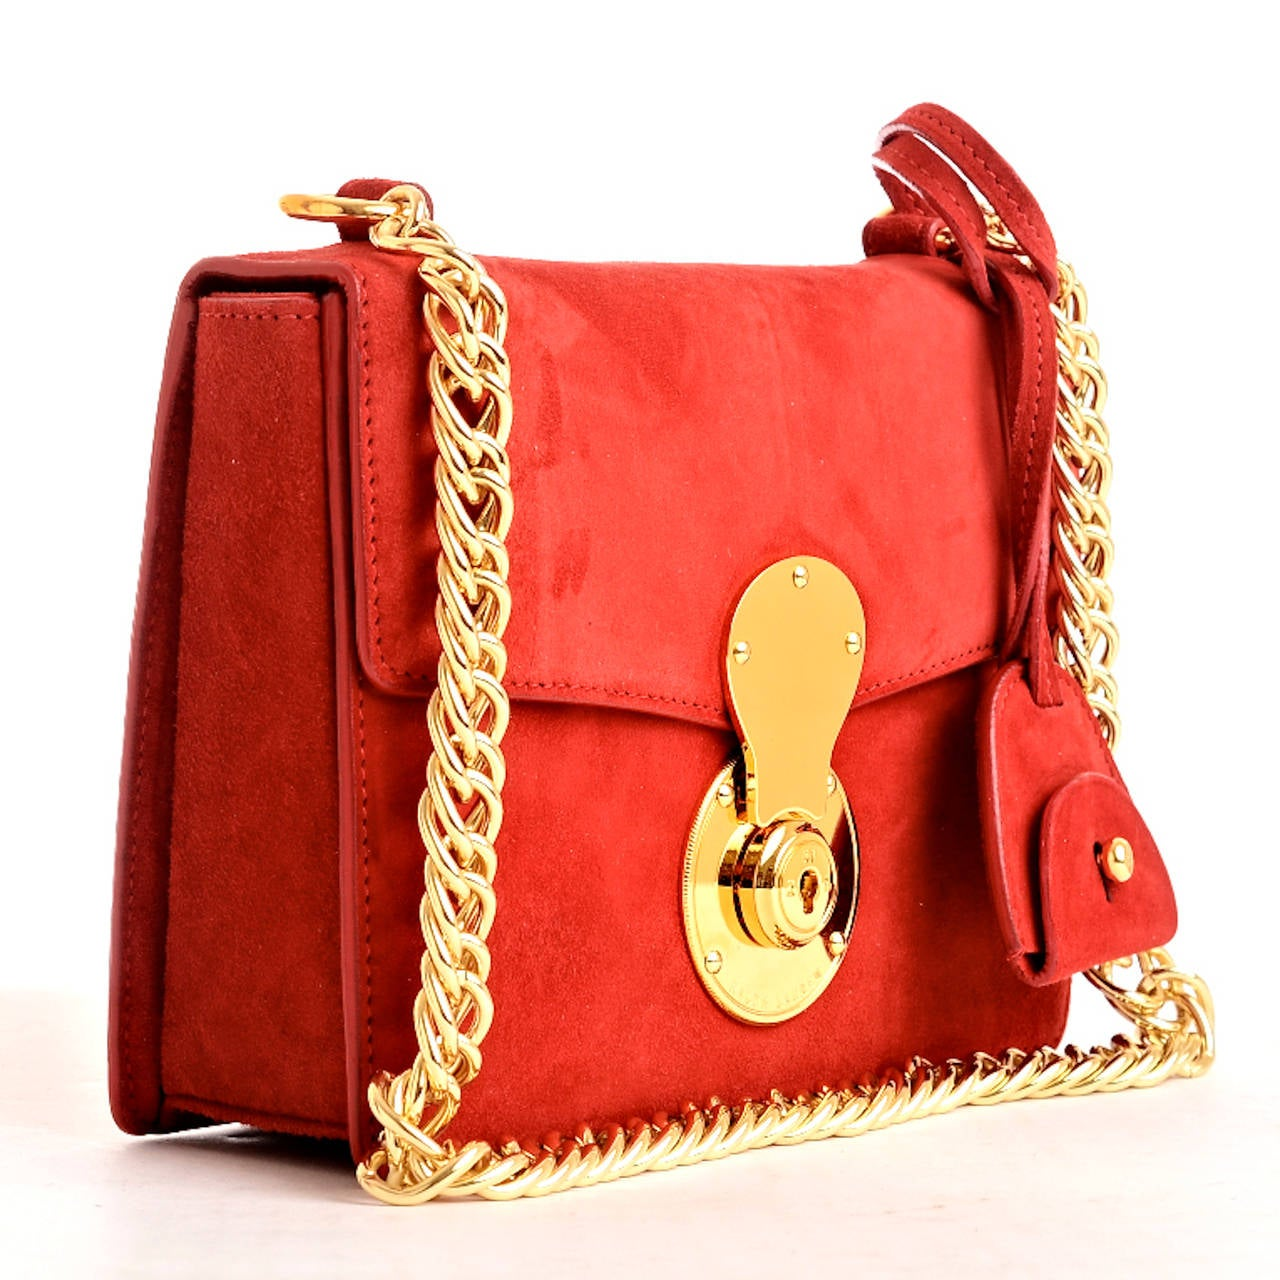 Ralph Lauren plush red suede Ricky Chain Bag with front flap with signature gold tone logo-embossed Ricky lock, matching removable key bell and gold tone chain link shoulder strap. Interior of black fabric with single open pocket on rear wall.